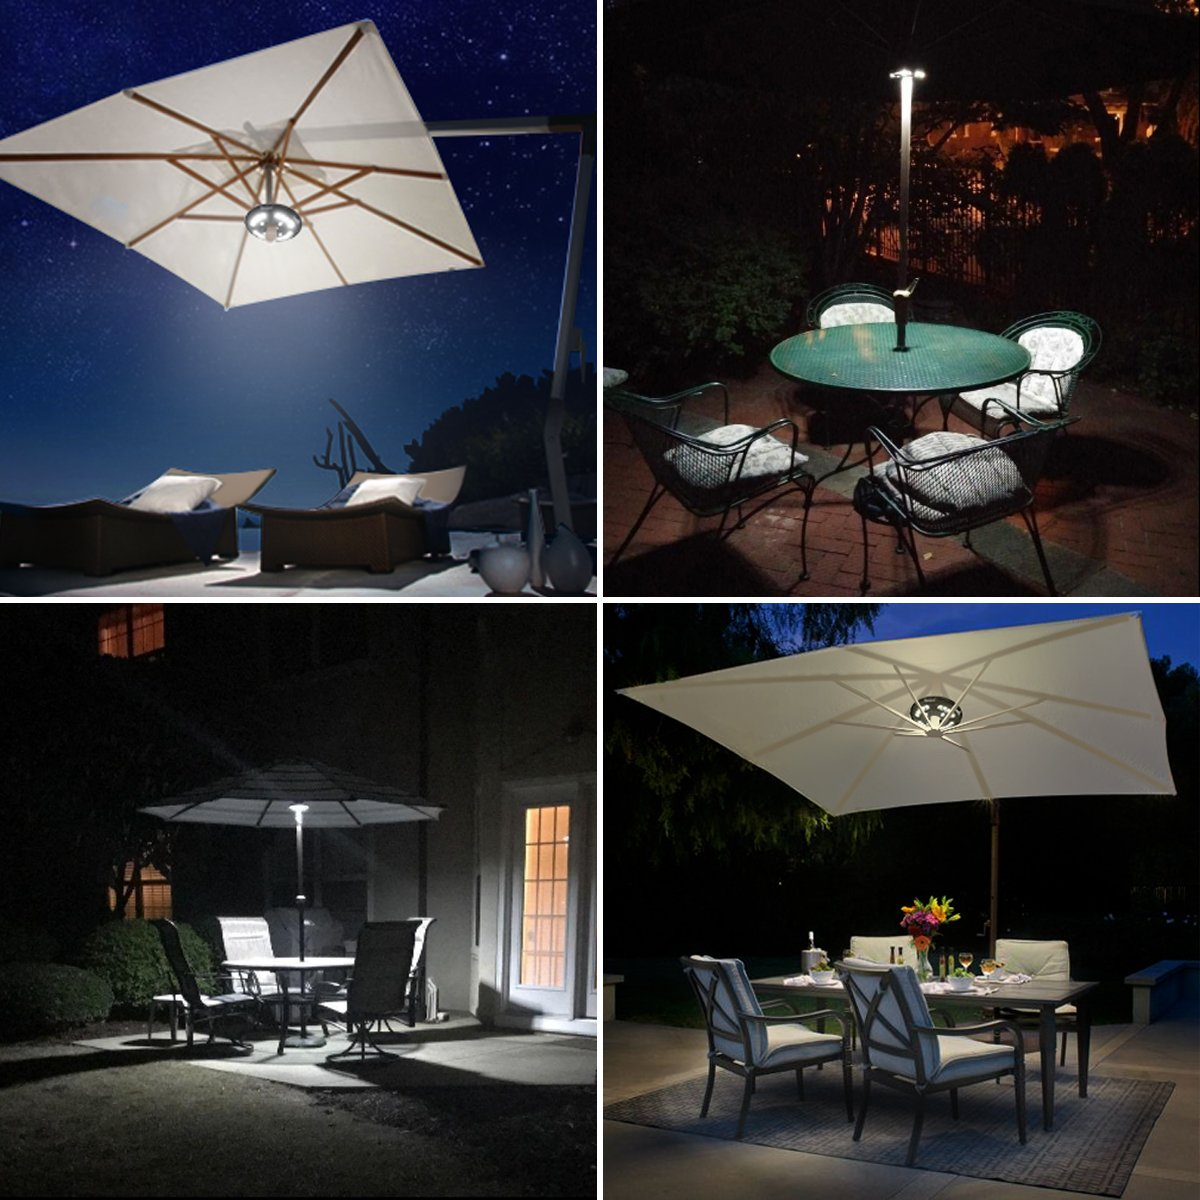 AMIR (Upgraded Version) Patio Umbrella Light, Cordless 24 LED Night Lights, 12,000 lux Umbrella LED Light, Battery Operated Umbrella Pole Light for Umbrellas, Camping Tents or Outdoor Use (Black) by AMIR